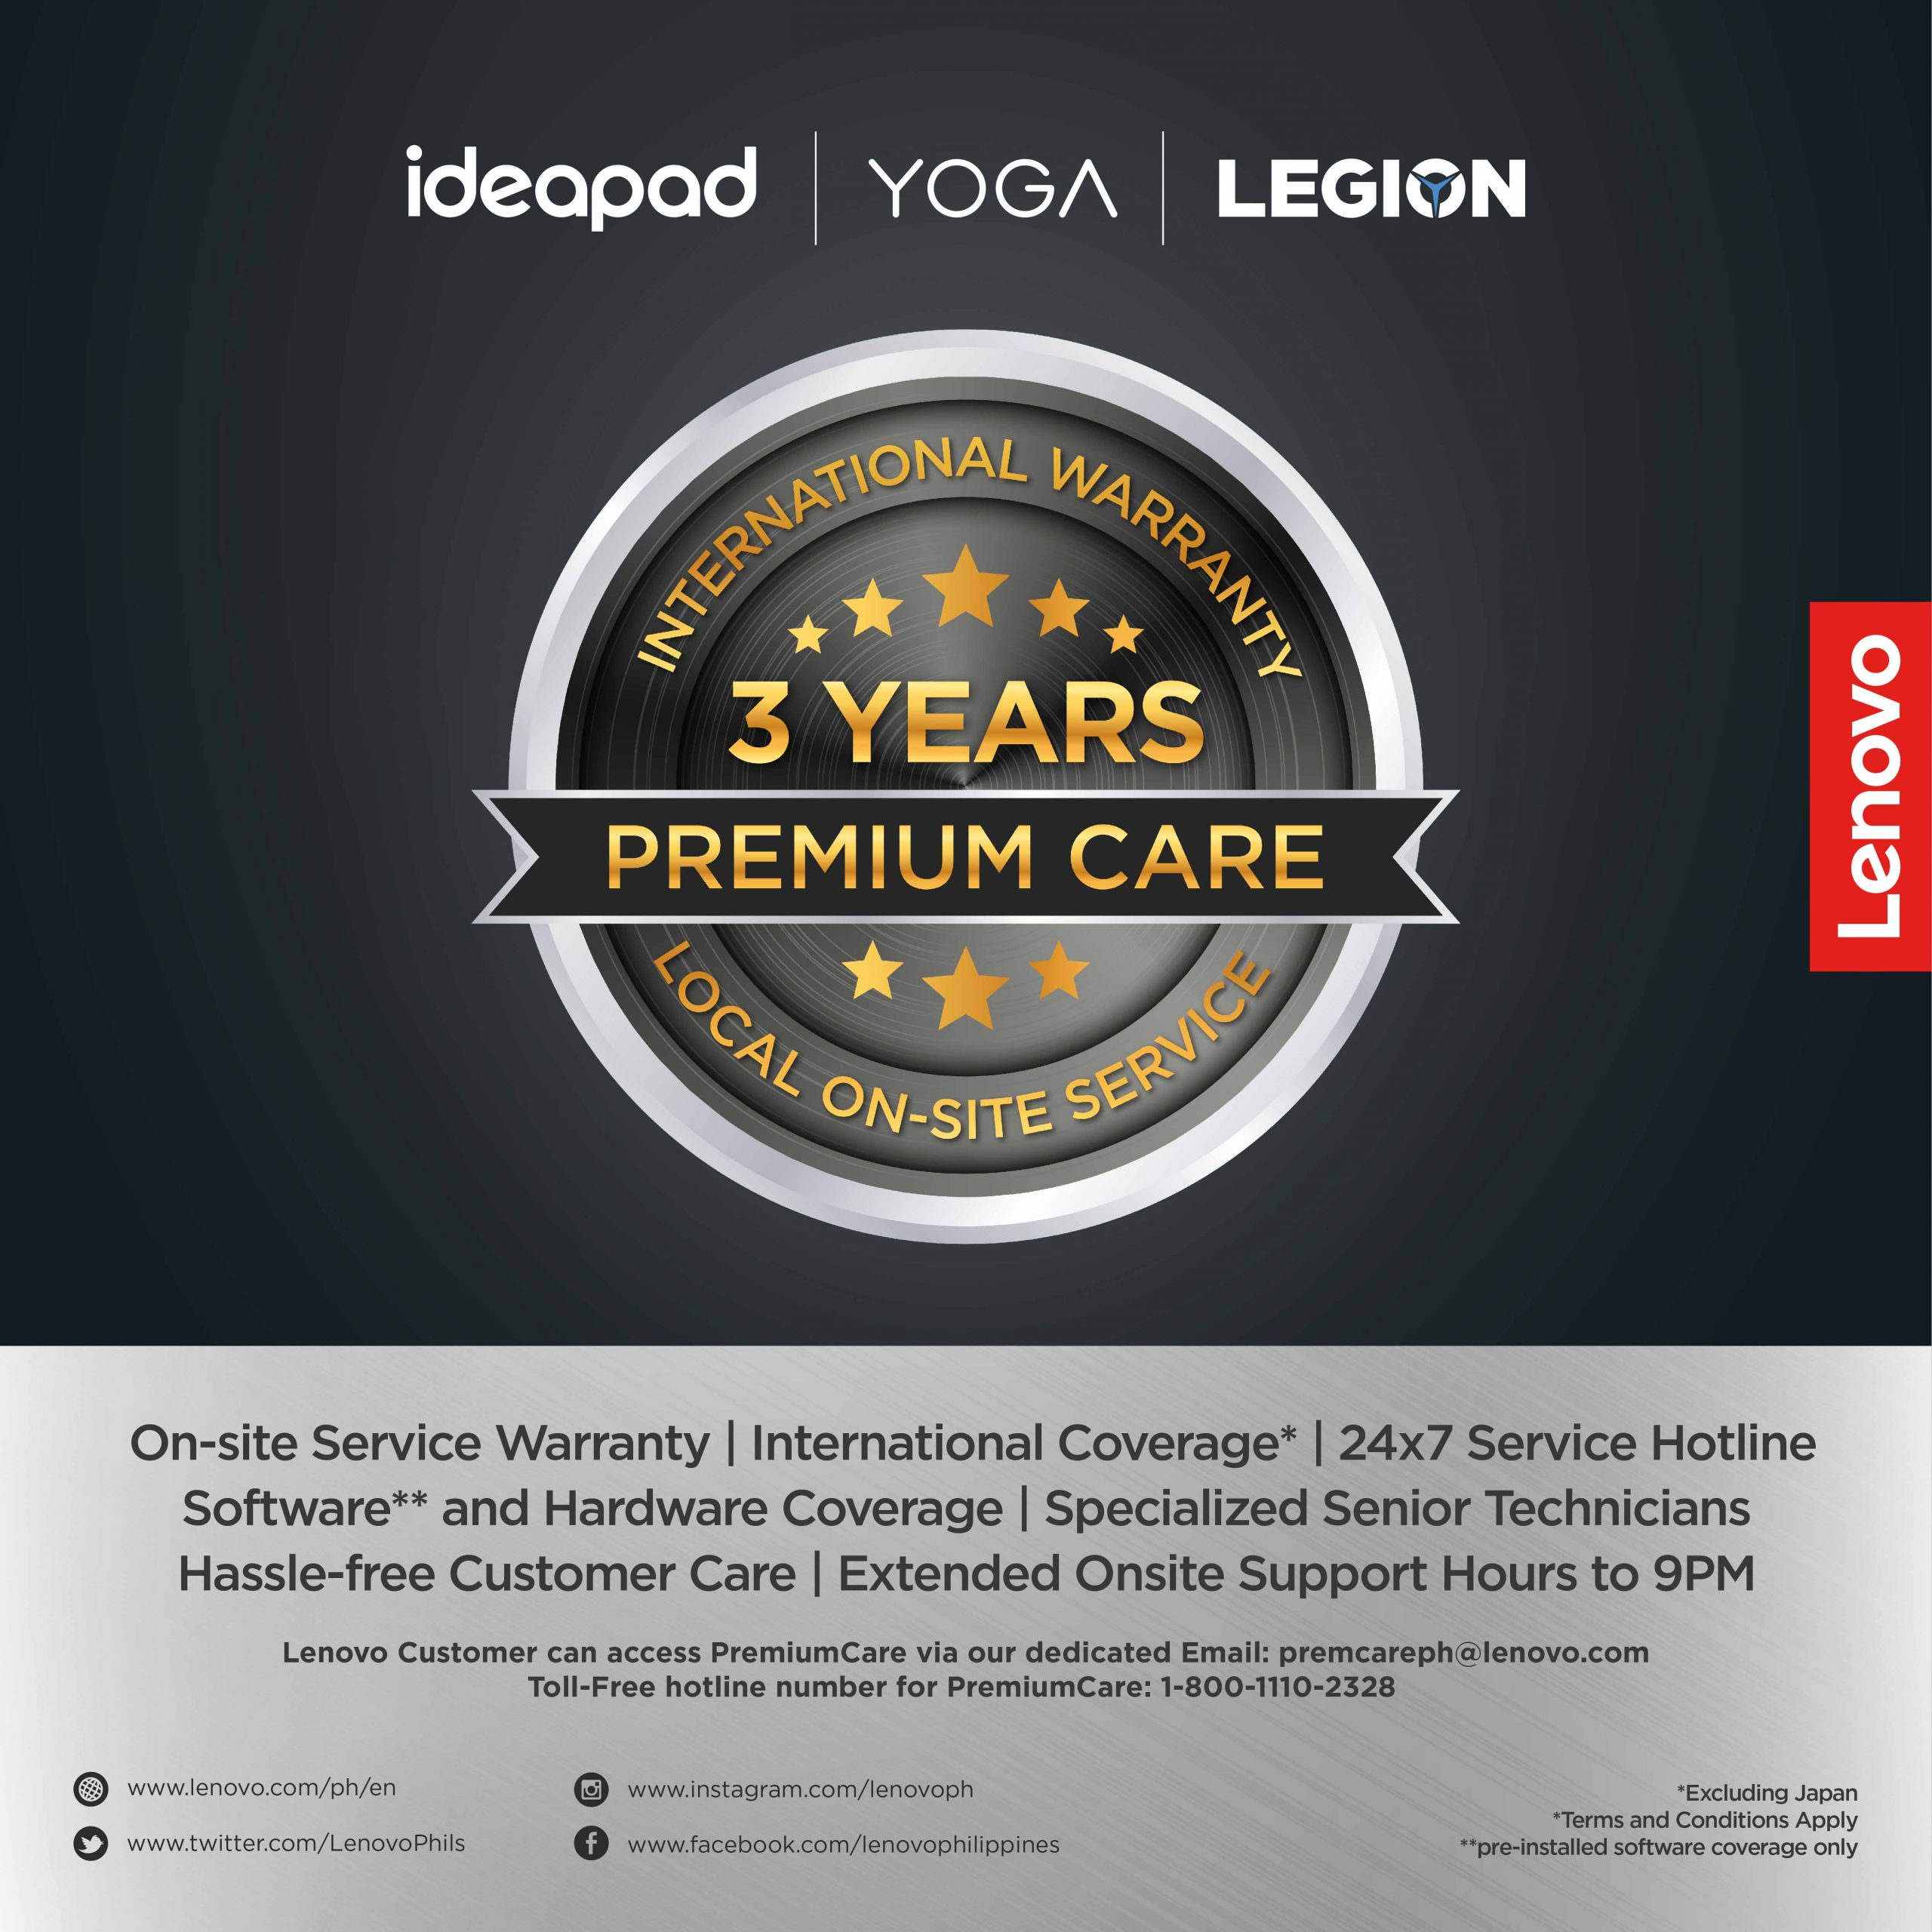 lenovo-to-offer-3-year-premium-care-with-its-devices-starting-july-1